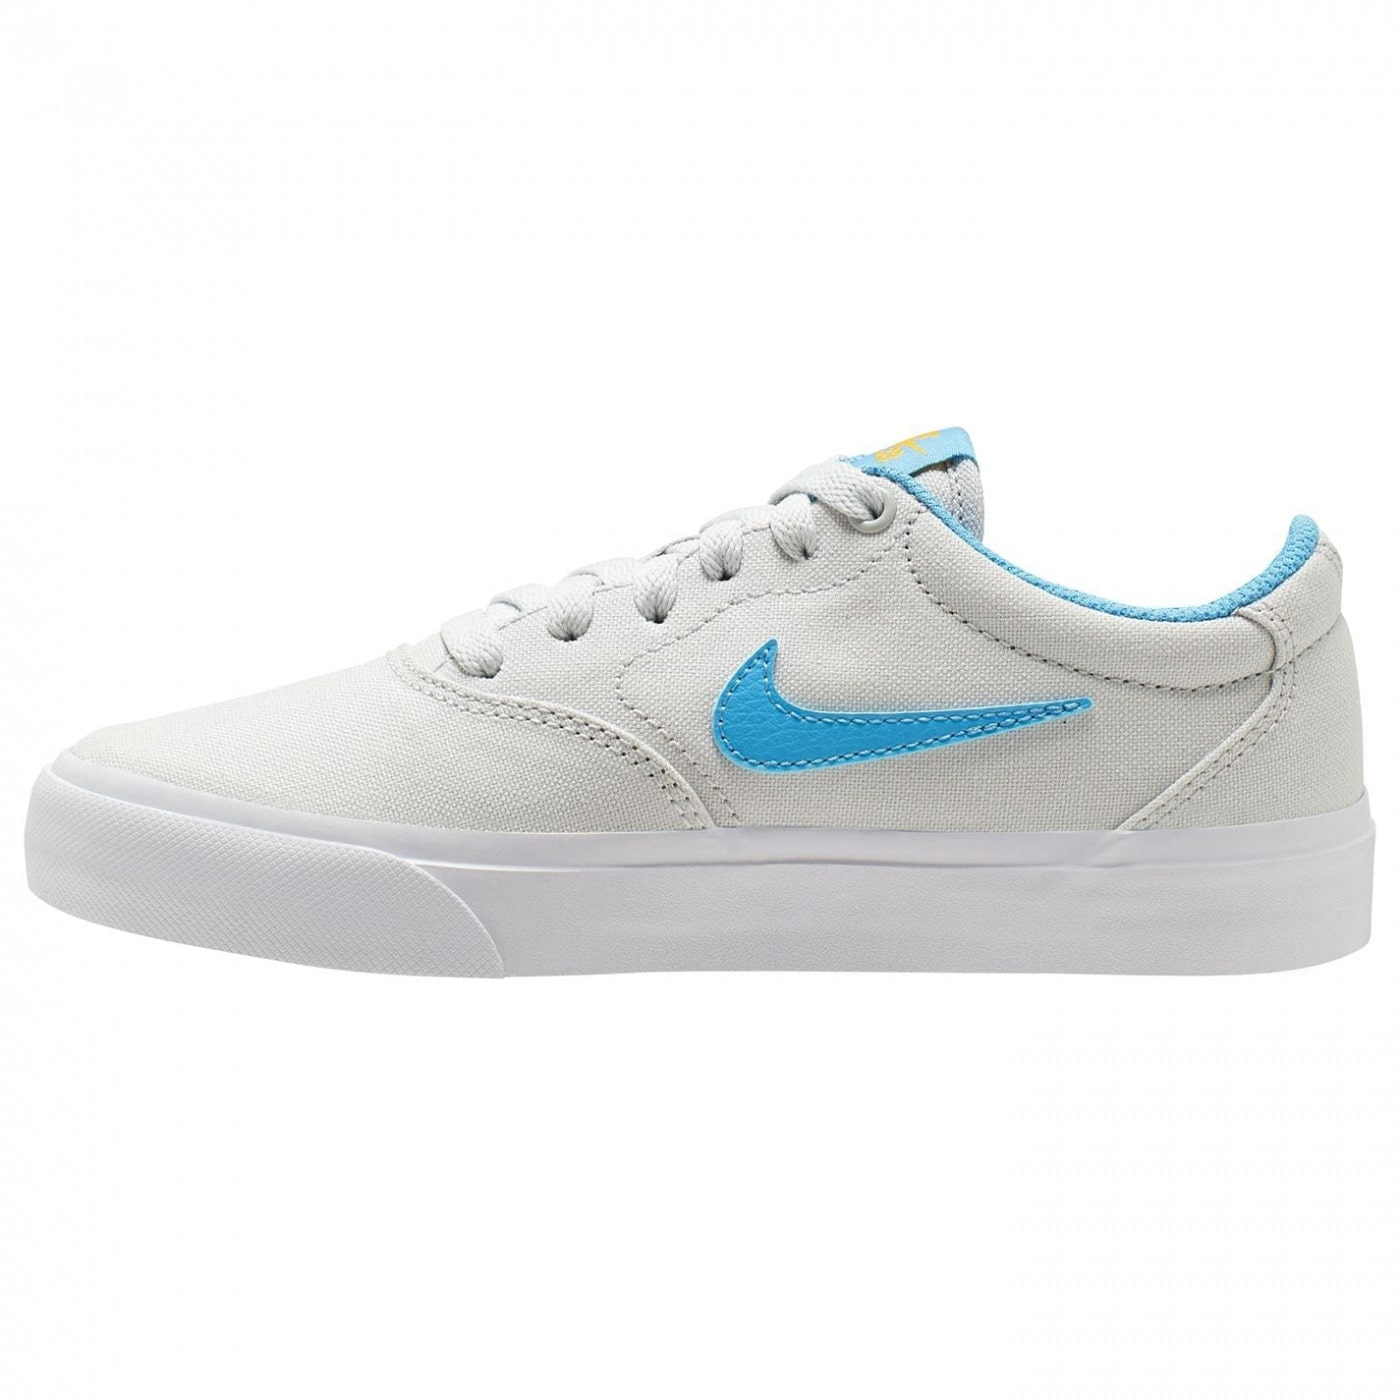 Nike SB Charge Canvas Big Kids' Skate Shoe